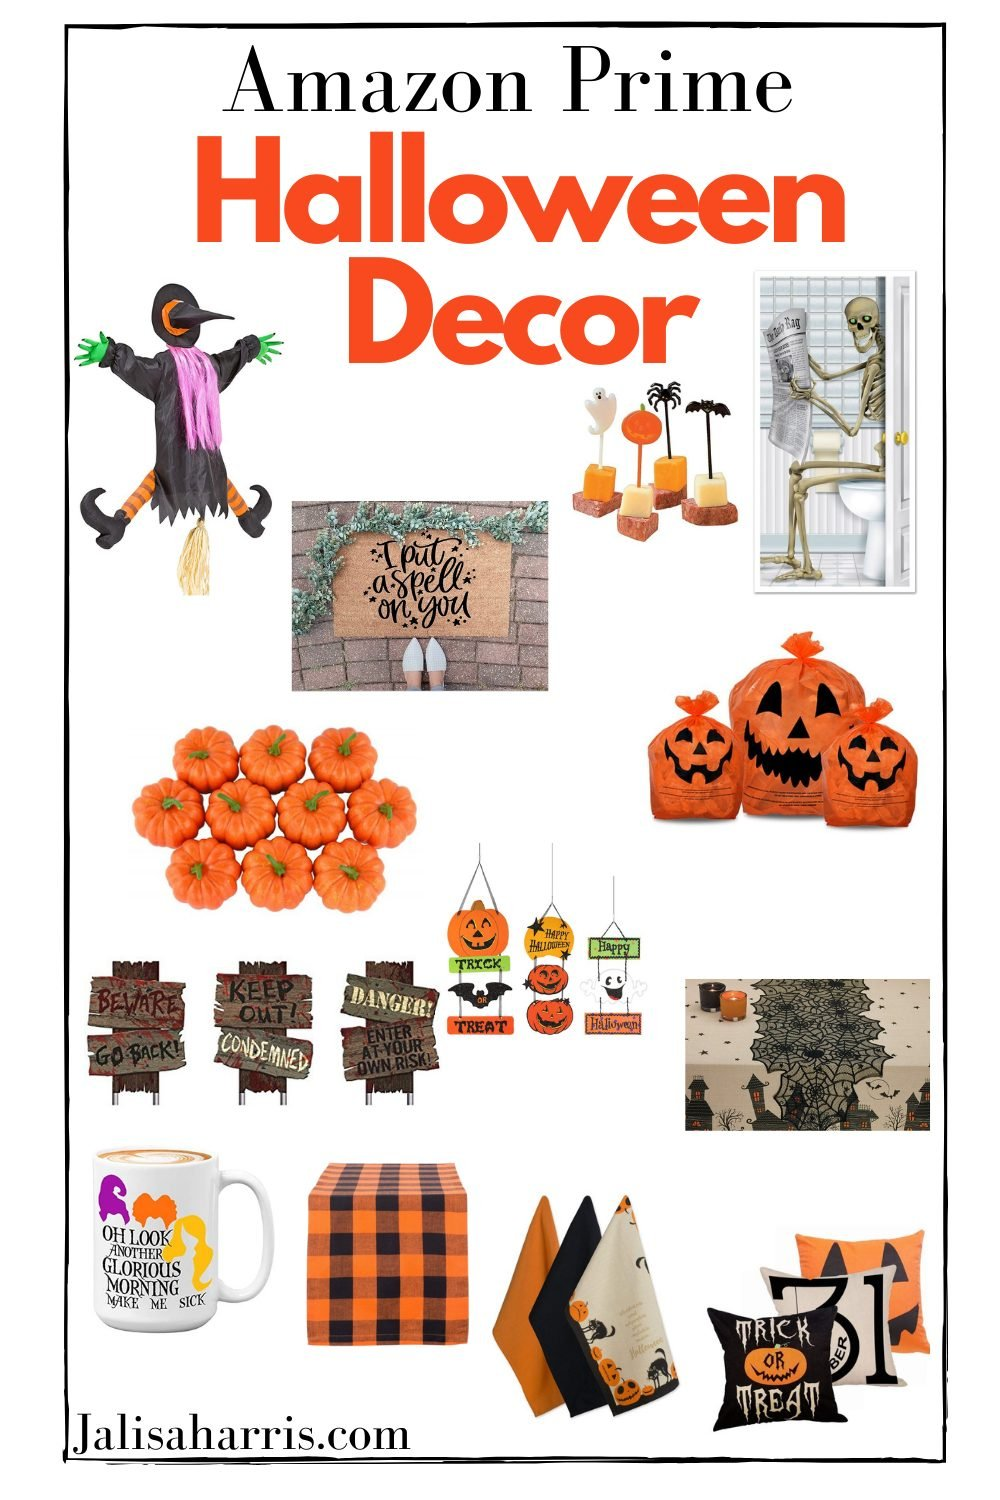 Happy Halloween month. It's the start of the holiday season which I must say I love. It's the second week into October and we've already bought A'scostumewhich indeed he loves.Who's ready for all that Halloween decor because I am. I rounded some great Amazon Prime Halloween decor that is super affordable and under $25. Plus with Amazon Prime will get to you these super quick. Just in case you are a late shopper.